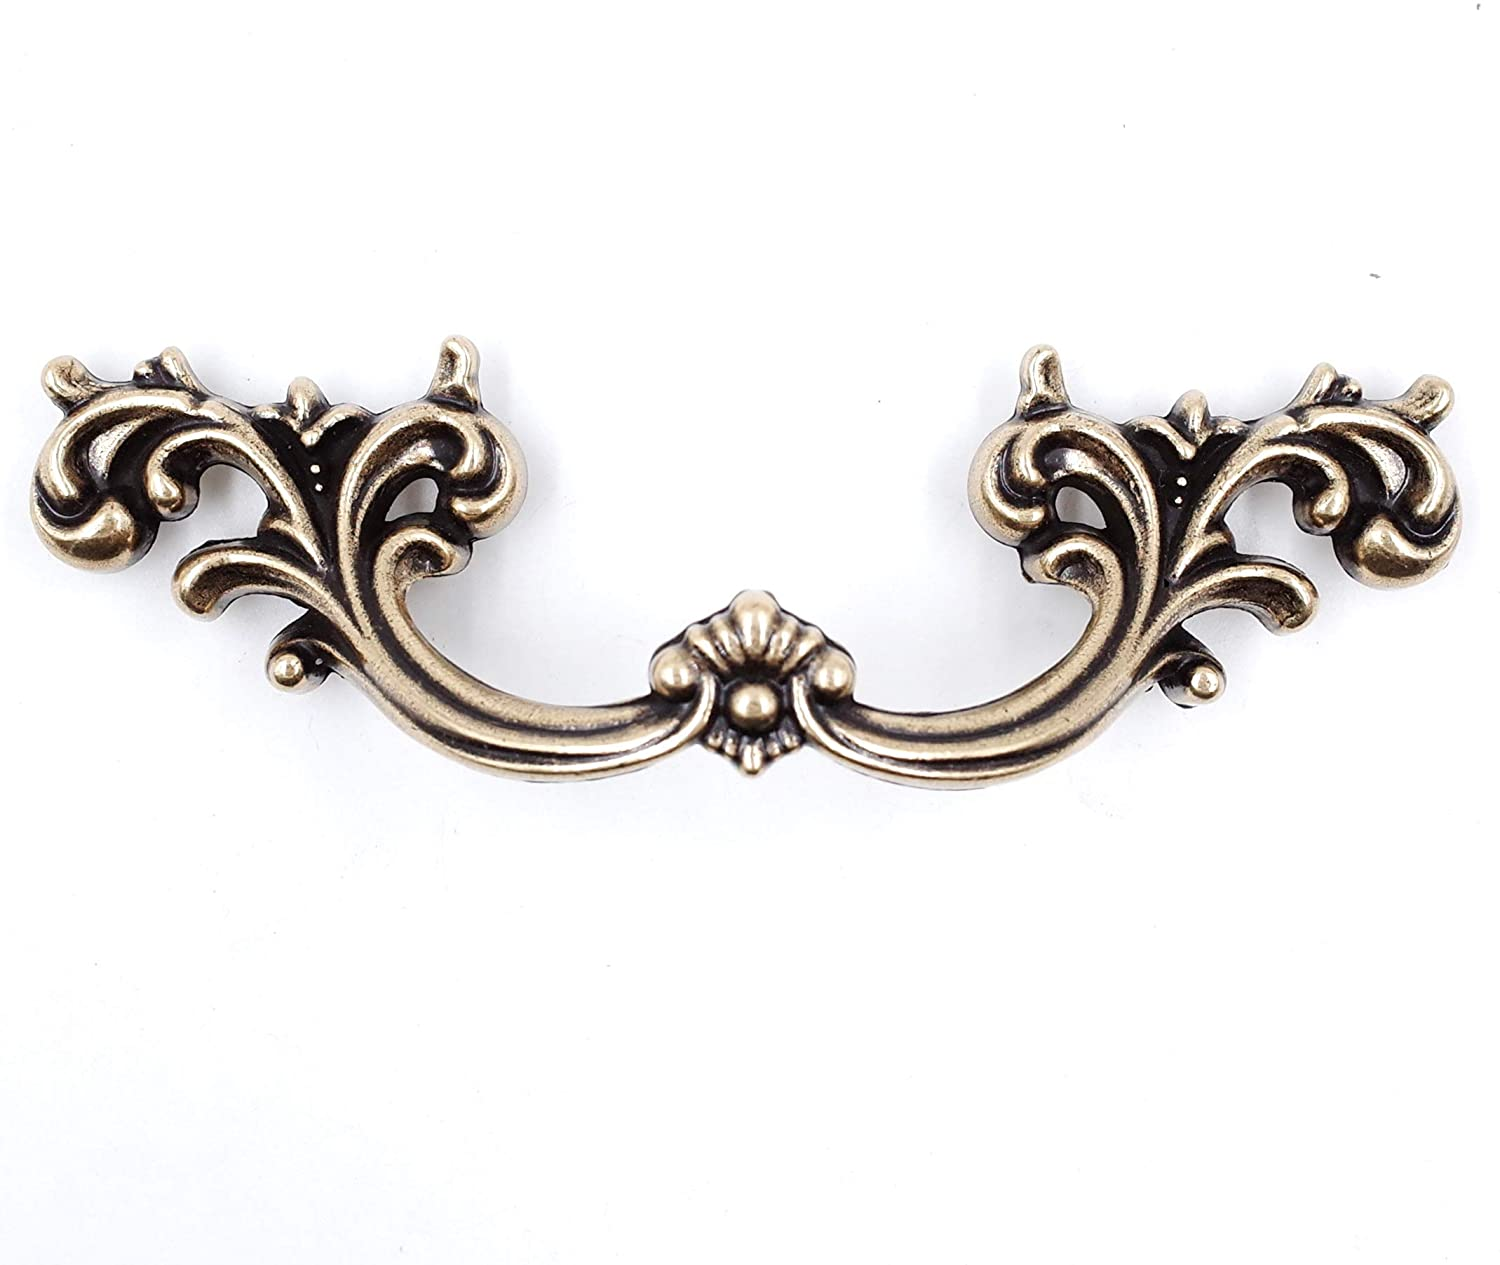 6-Pack French Provincial Drawer Pulls - Antique Brass, 2-1/2